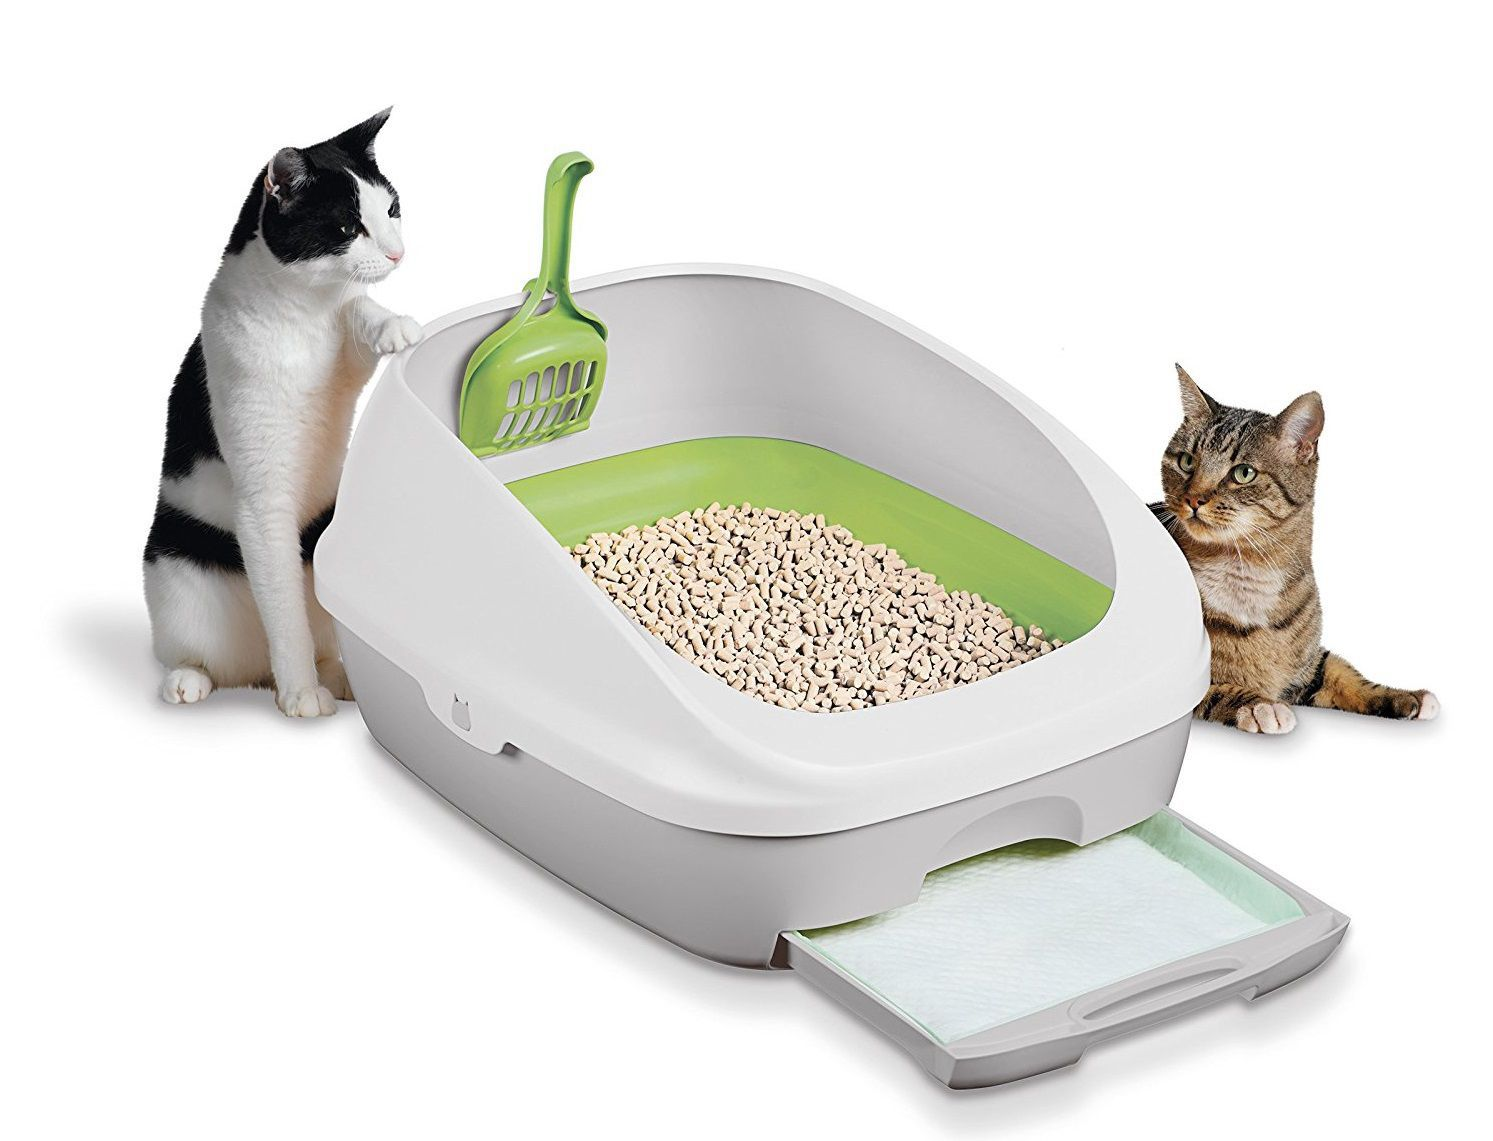 The Best Odor Free Cat Litter Boxes Home And Garden Napavalleyregister Com